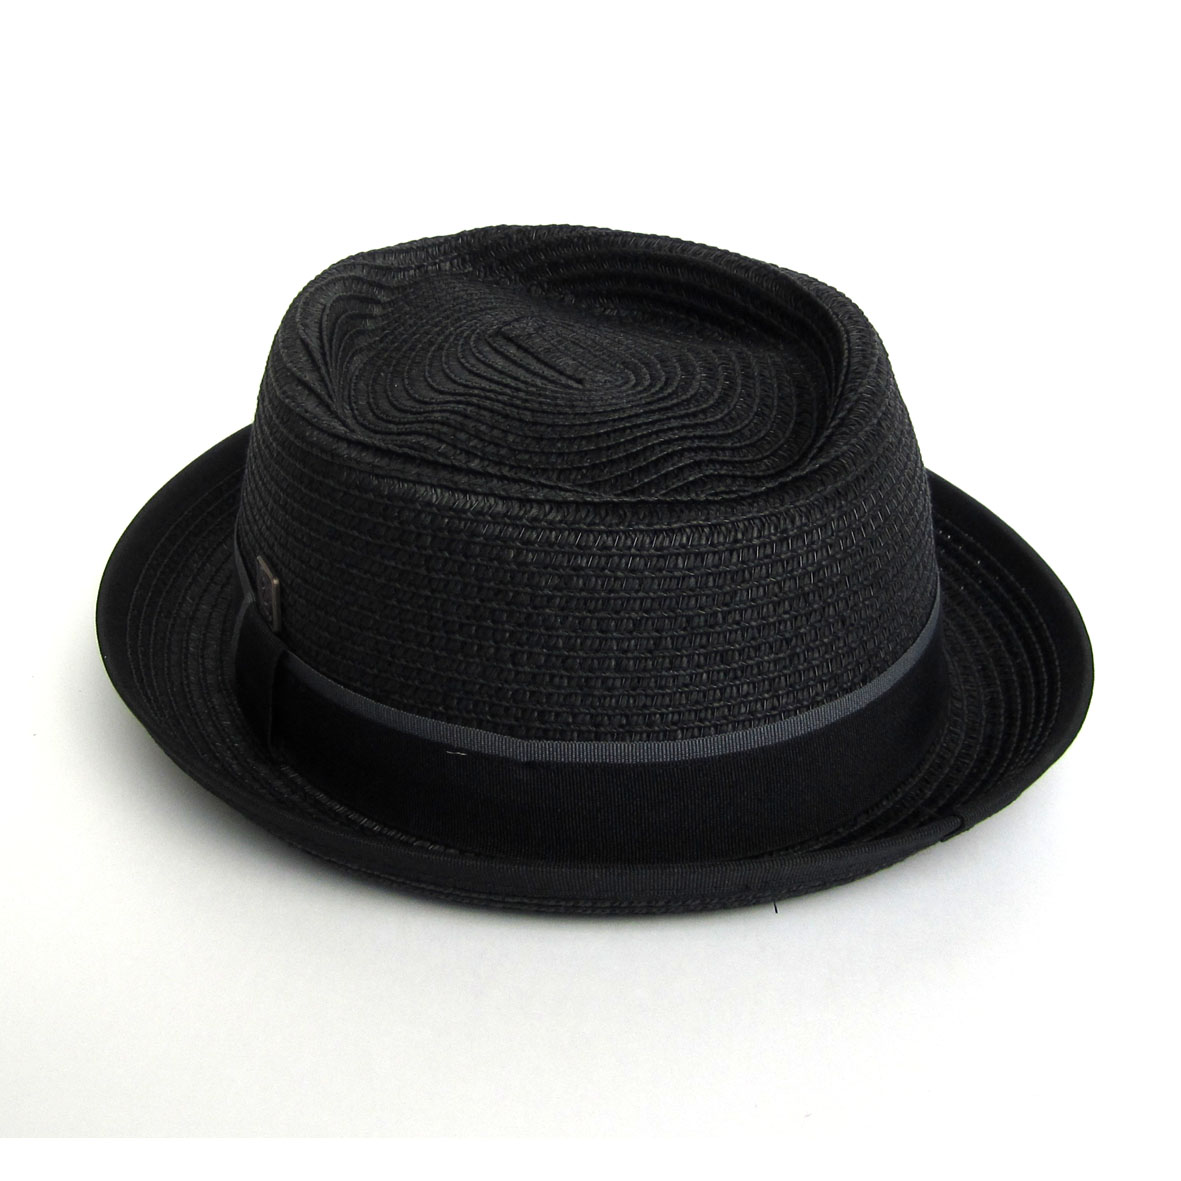 Buy Durban Black Coloured Hat at £45 b4e501c48c6